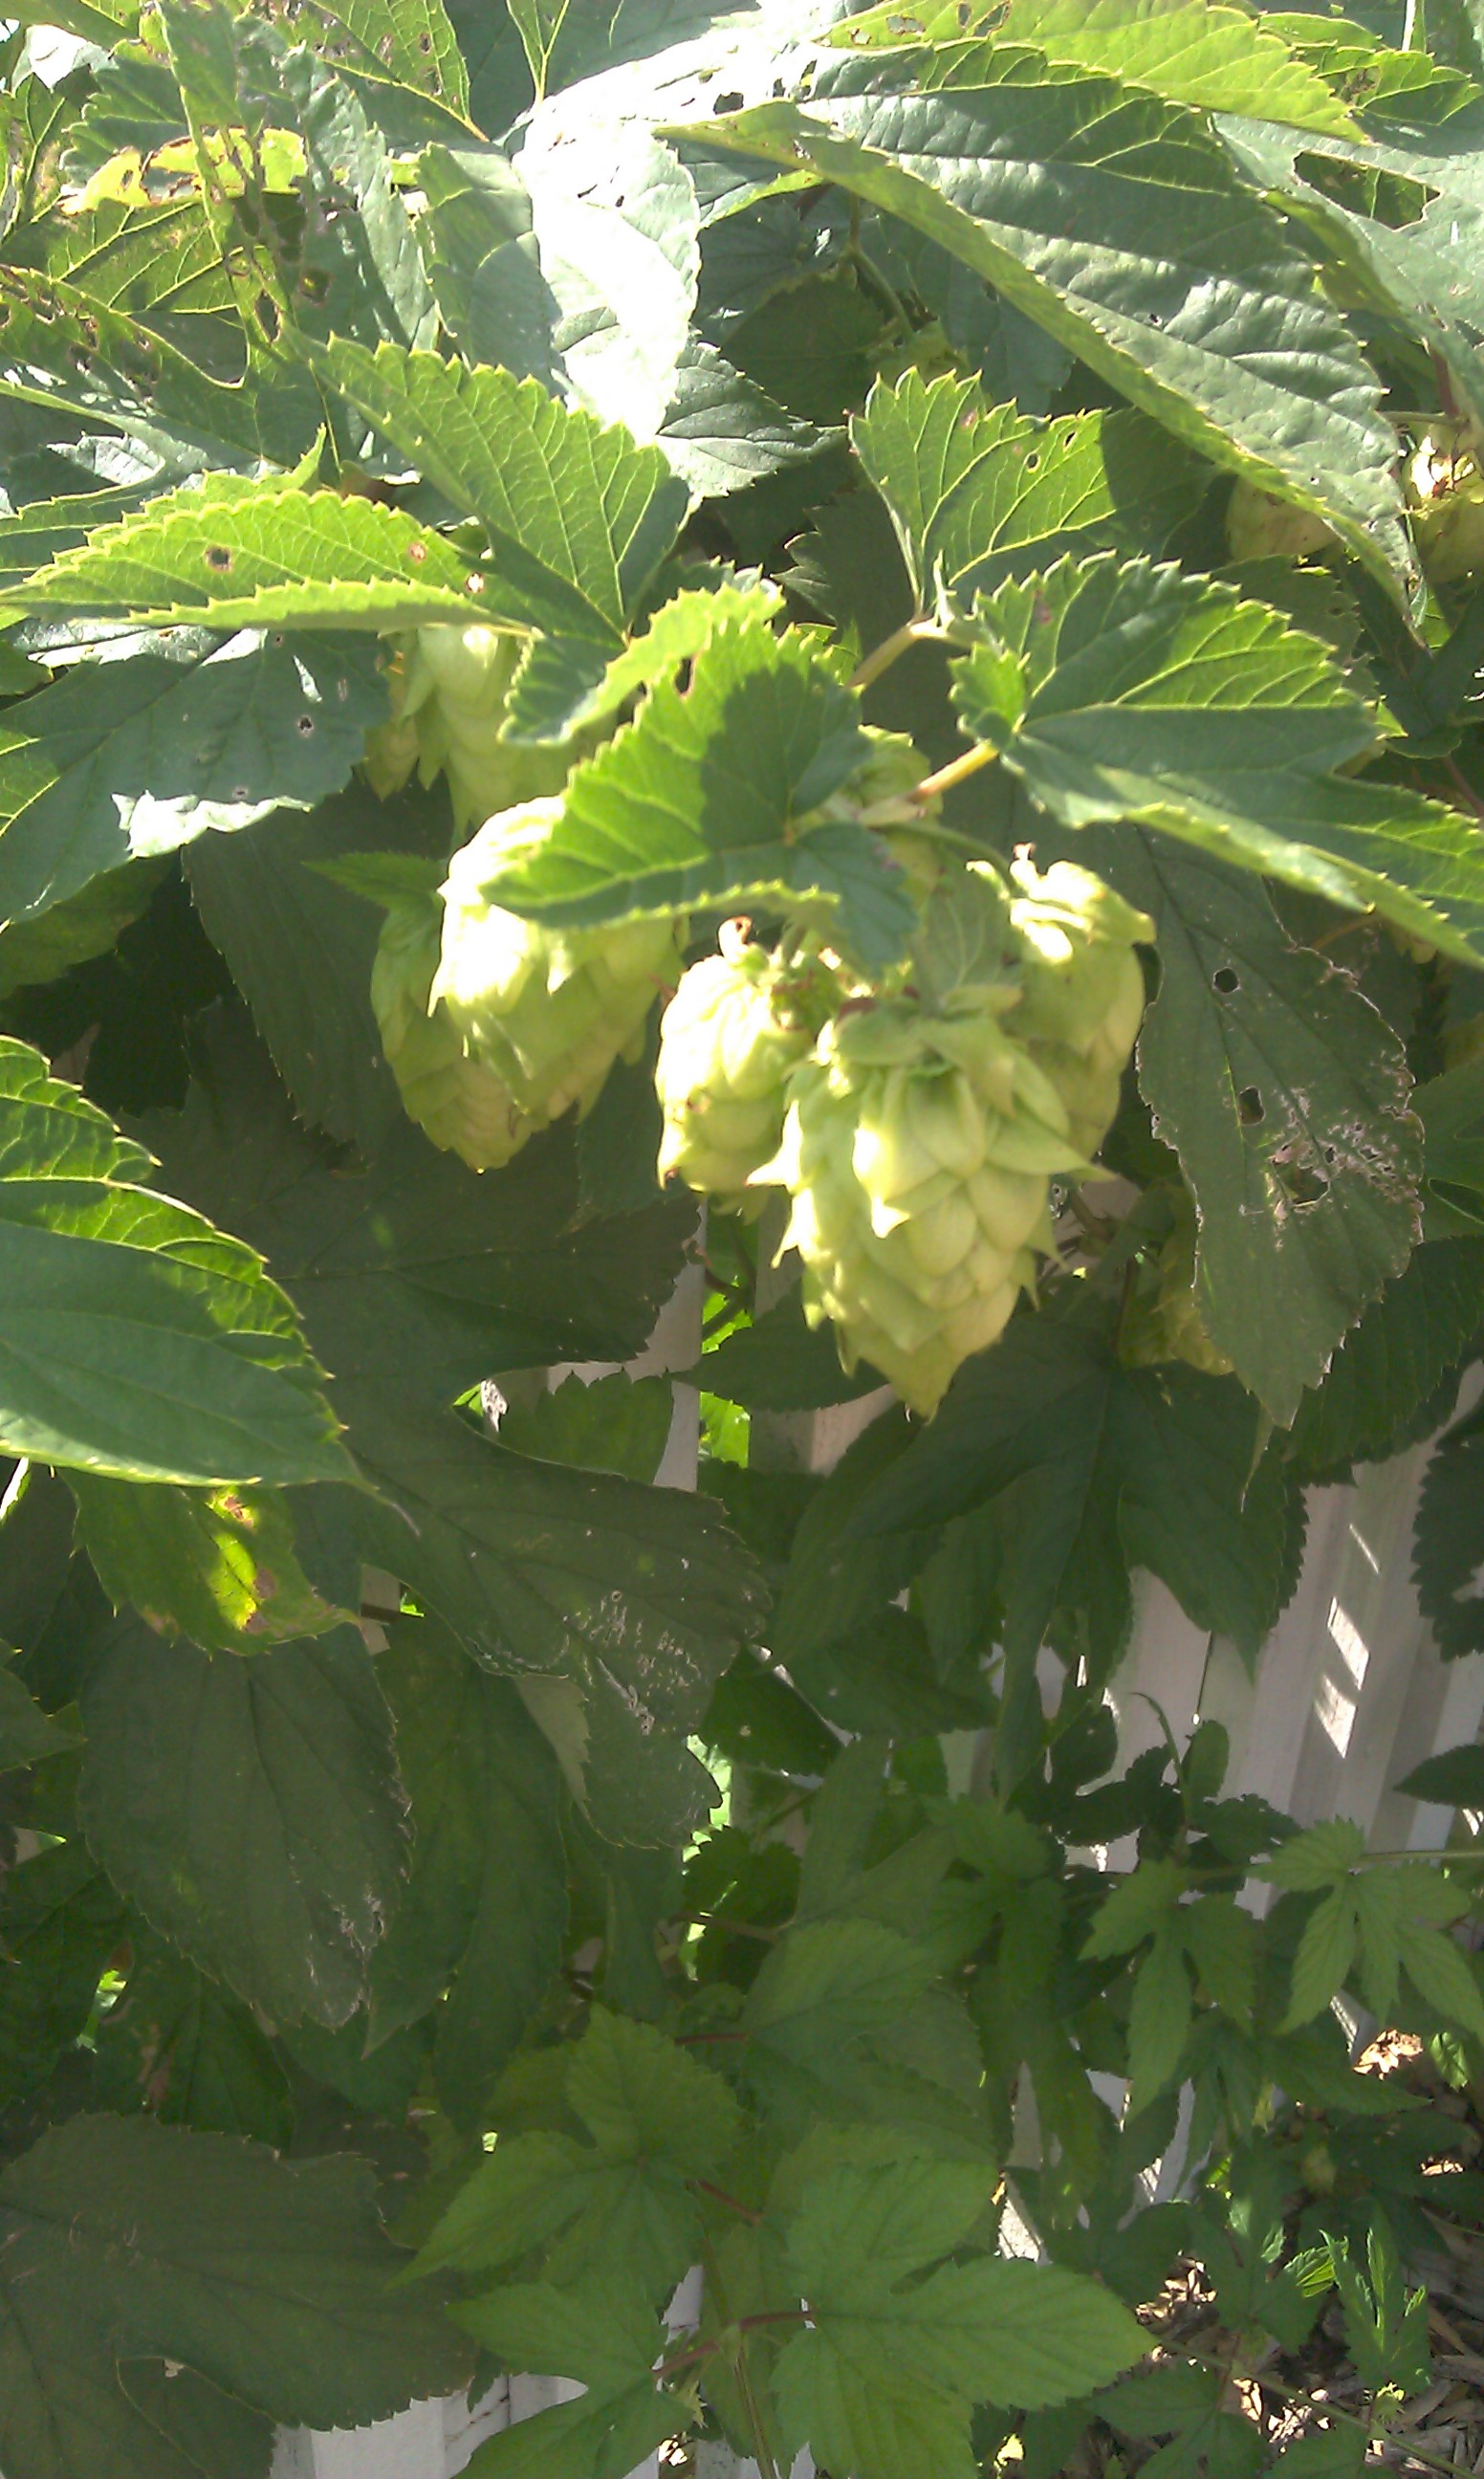 Hops cones at MLSP. These herbs have been used for different purposes through history.